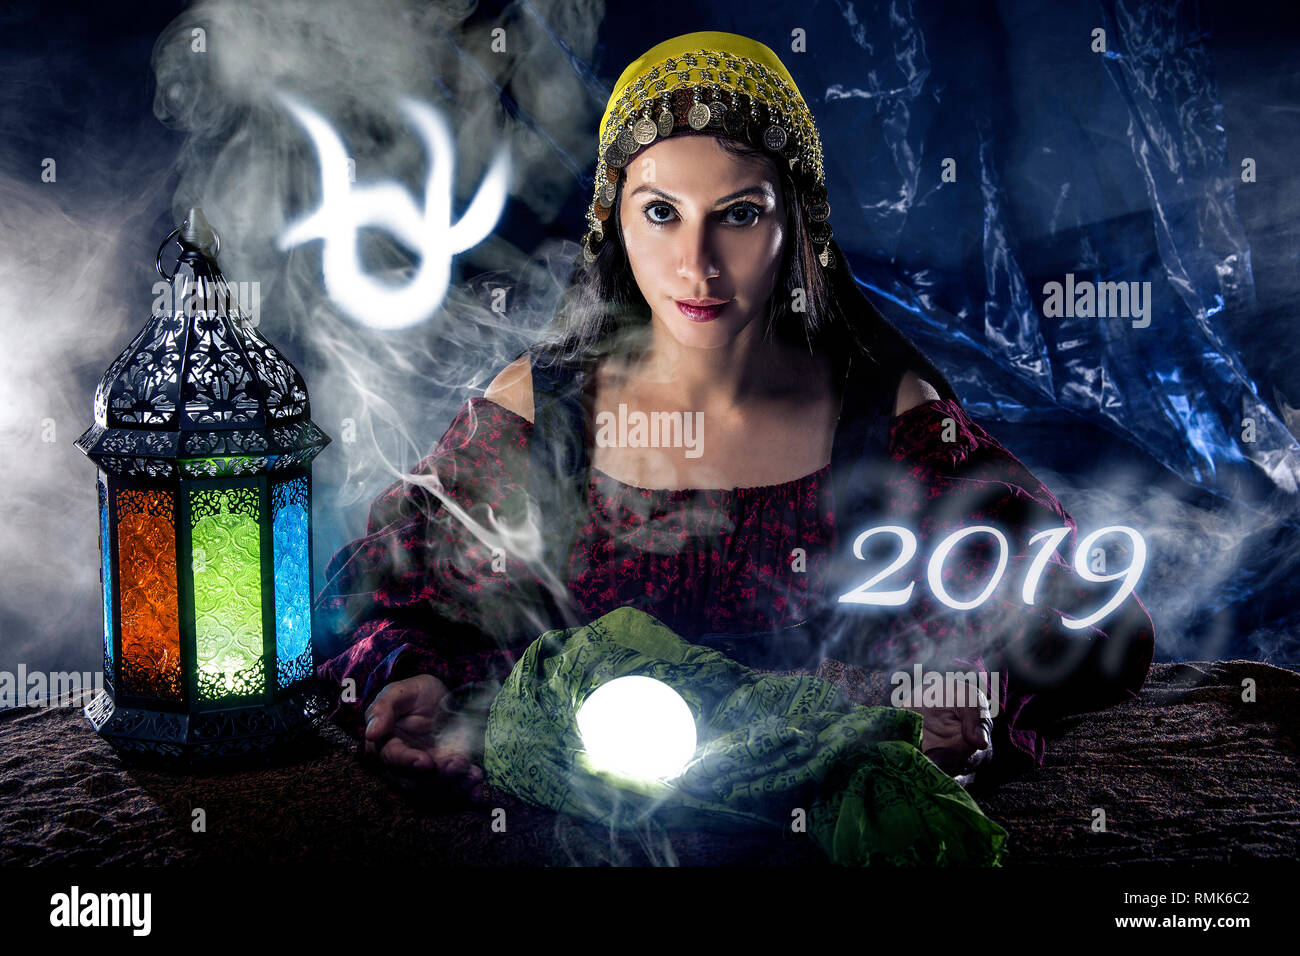 Psychic or fortune teller with crystal ball and horoscope zodiac sign of Ophiuchus - Stock Image